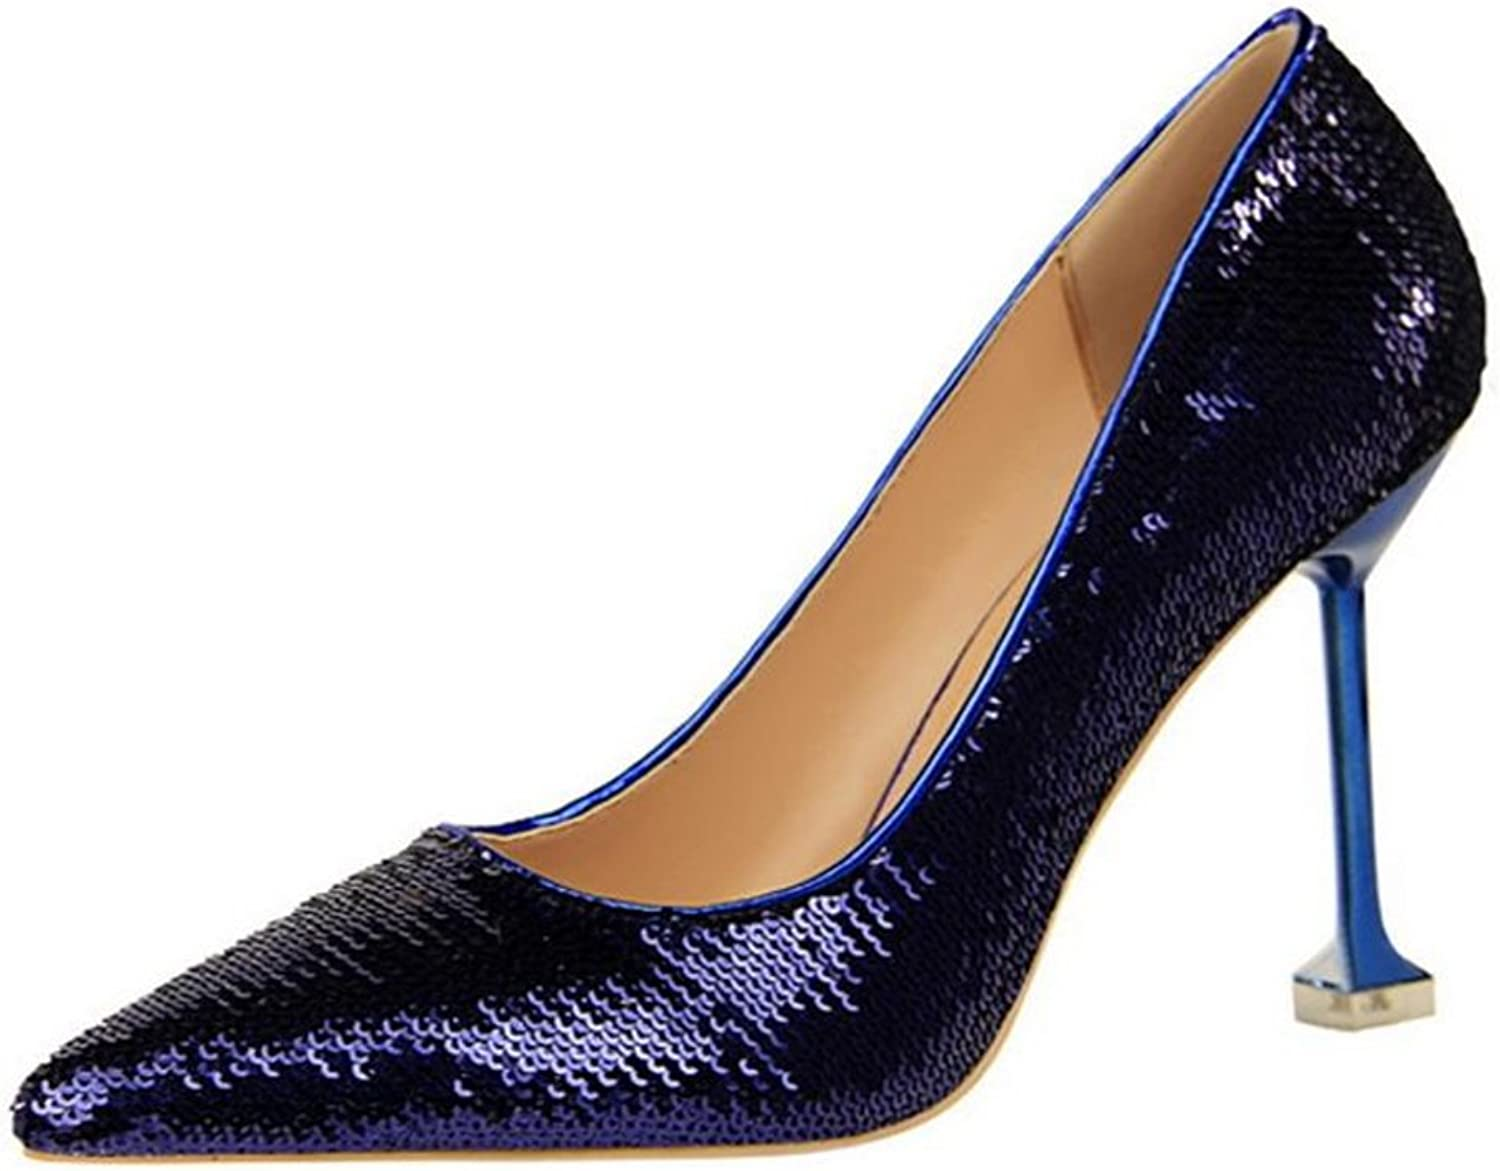 TUYPSHOES Women's Sequin Sharp Pointed with High Heels Bridal shoes Slip On Hidden Platform Pumps Work shoes Party shoes